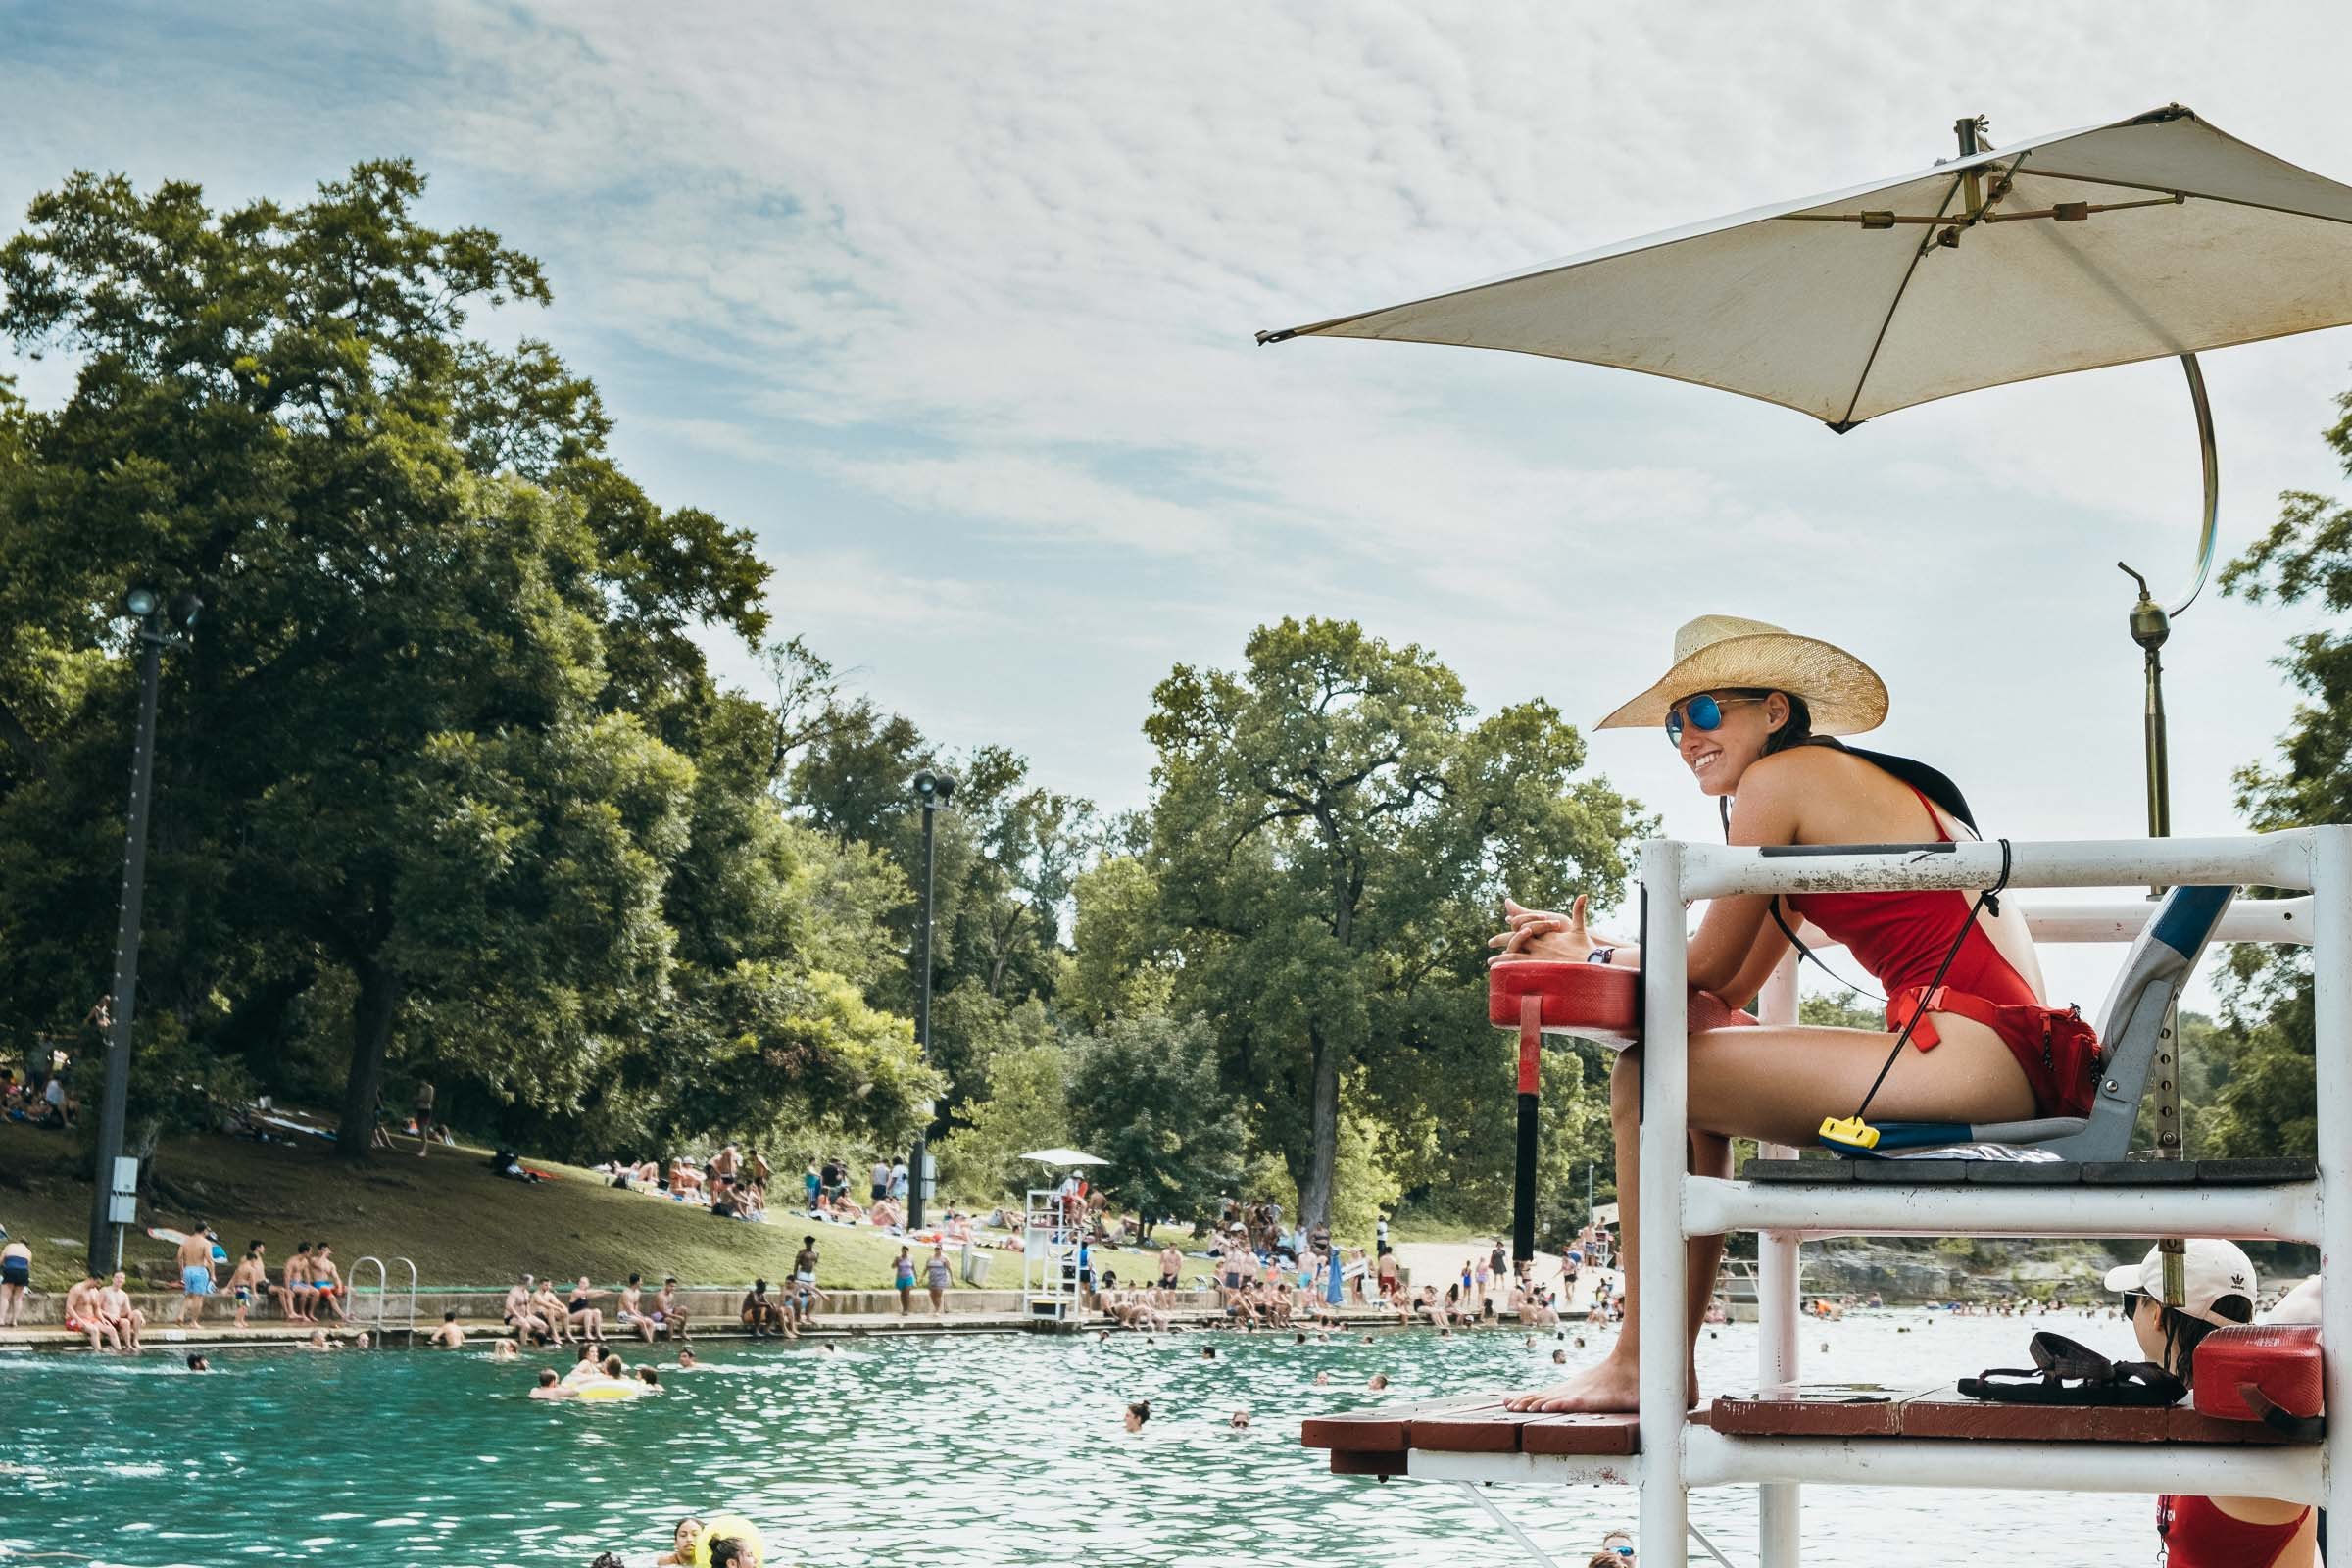 Summer fun - a lifeguard at Barton Springs pool, Austin TX